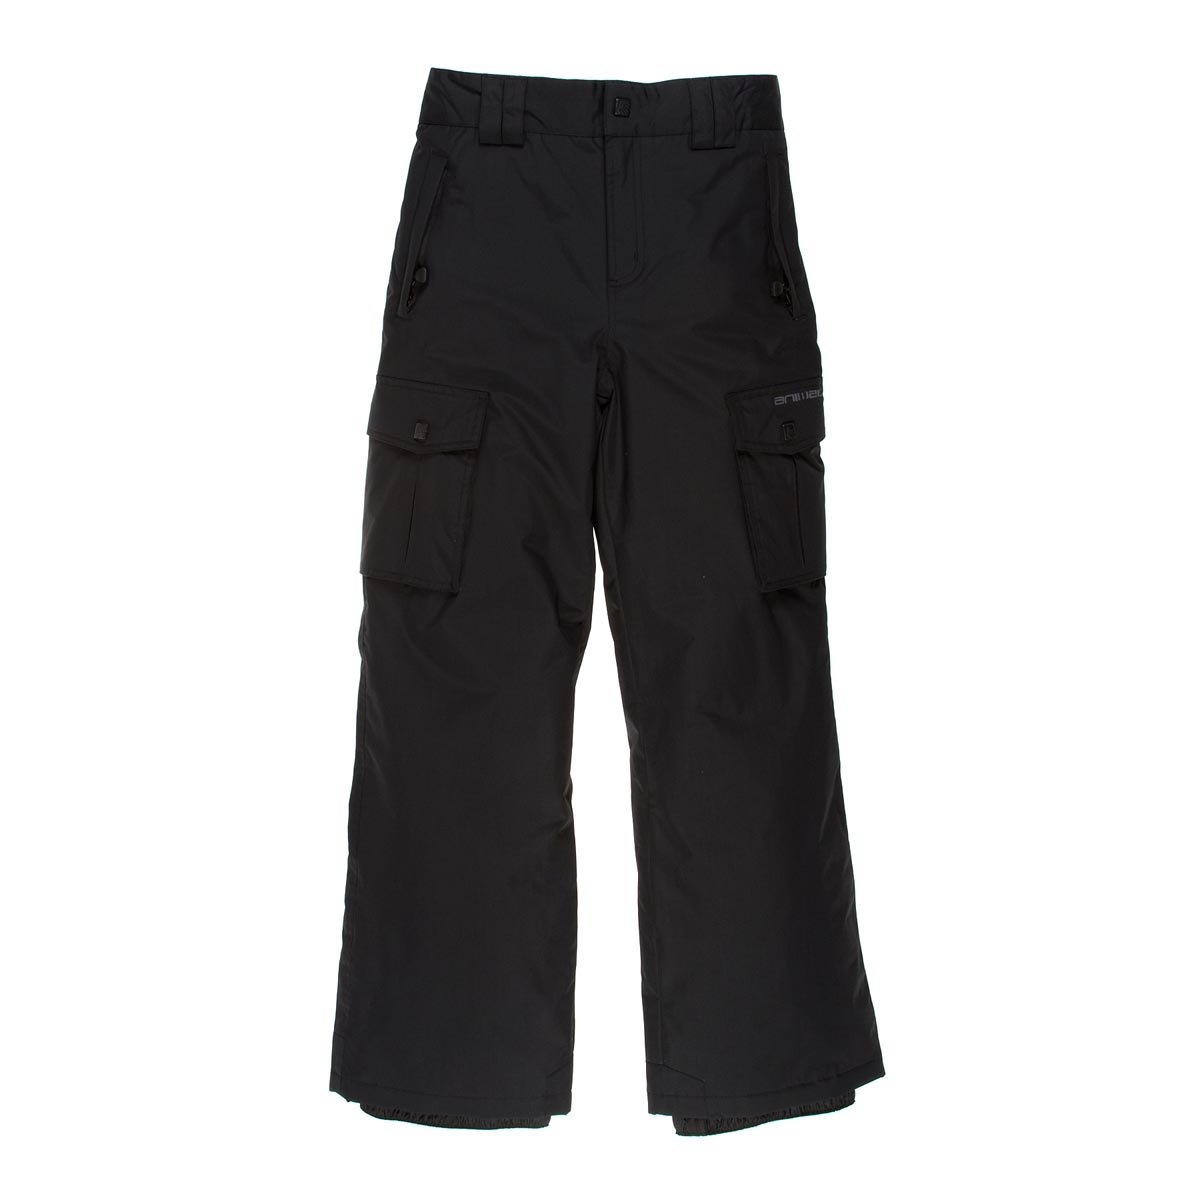 Animal Jungen Skihose Murty